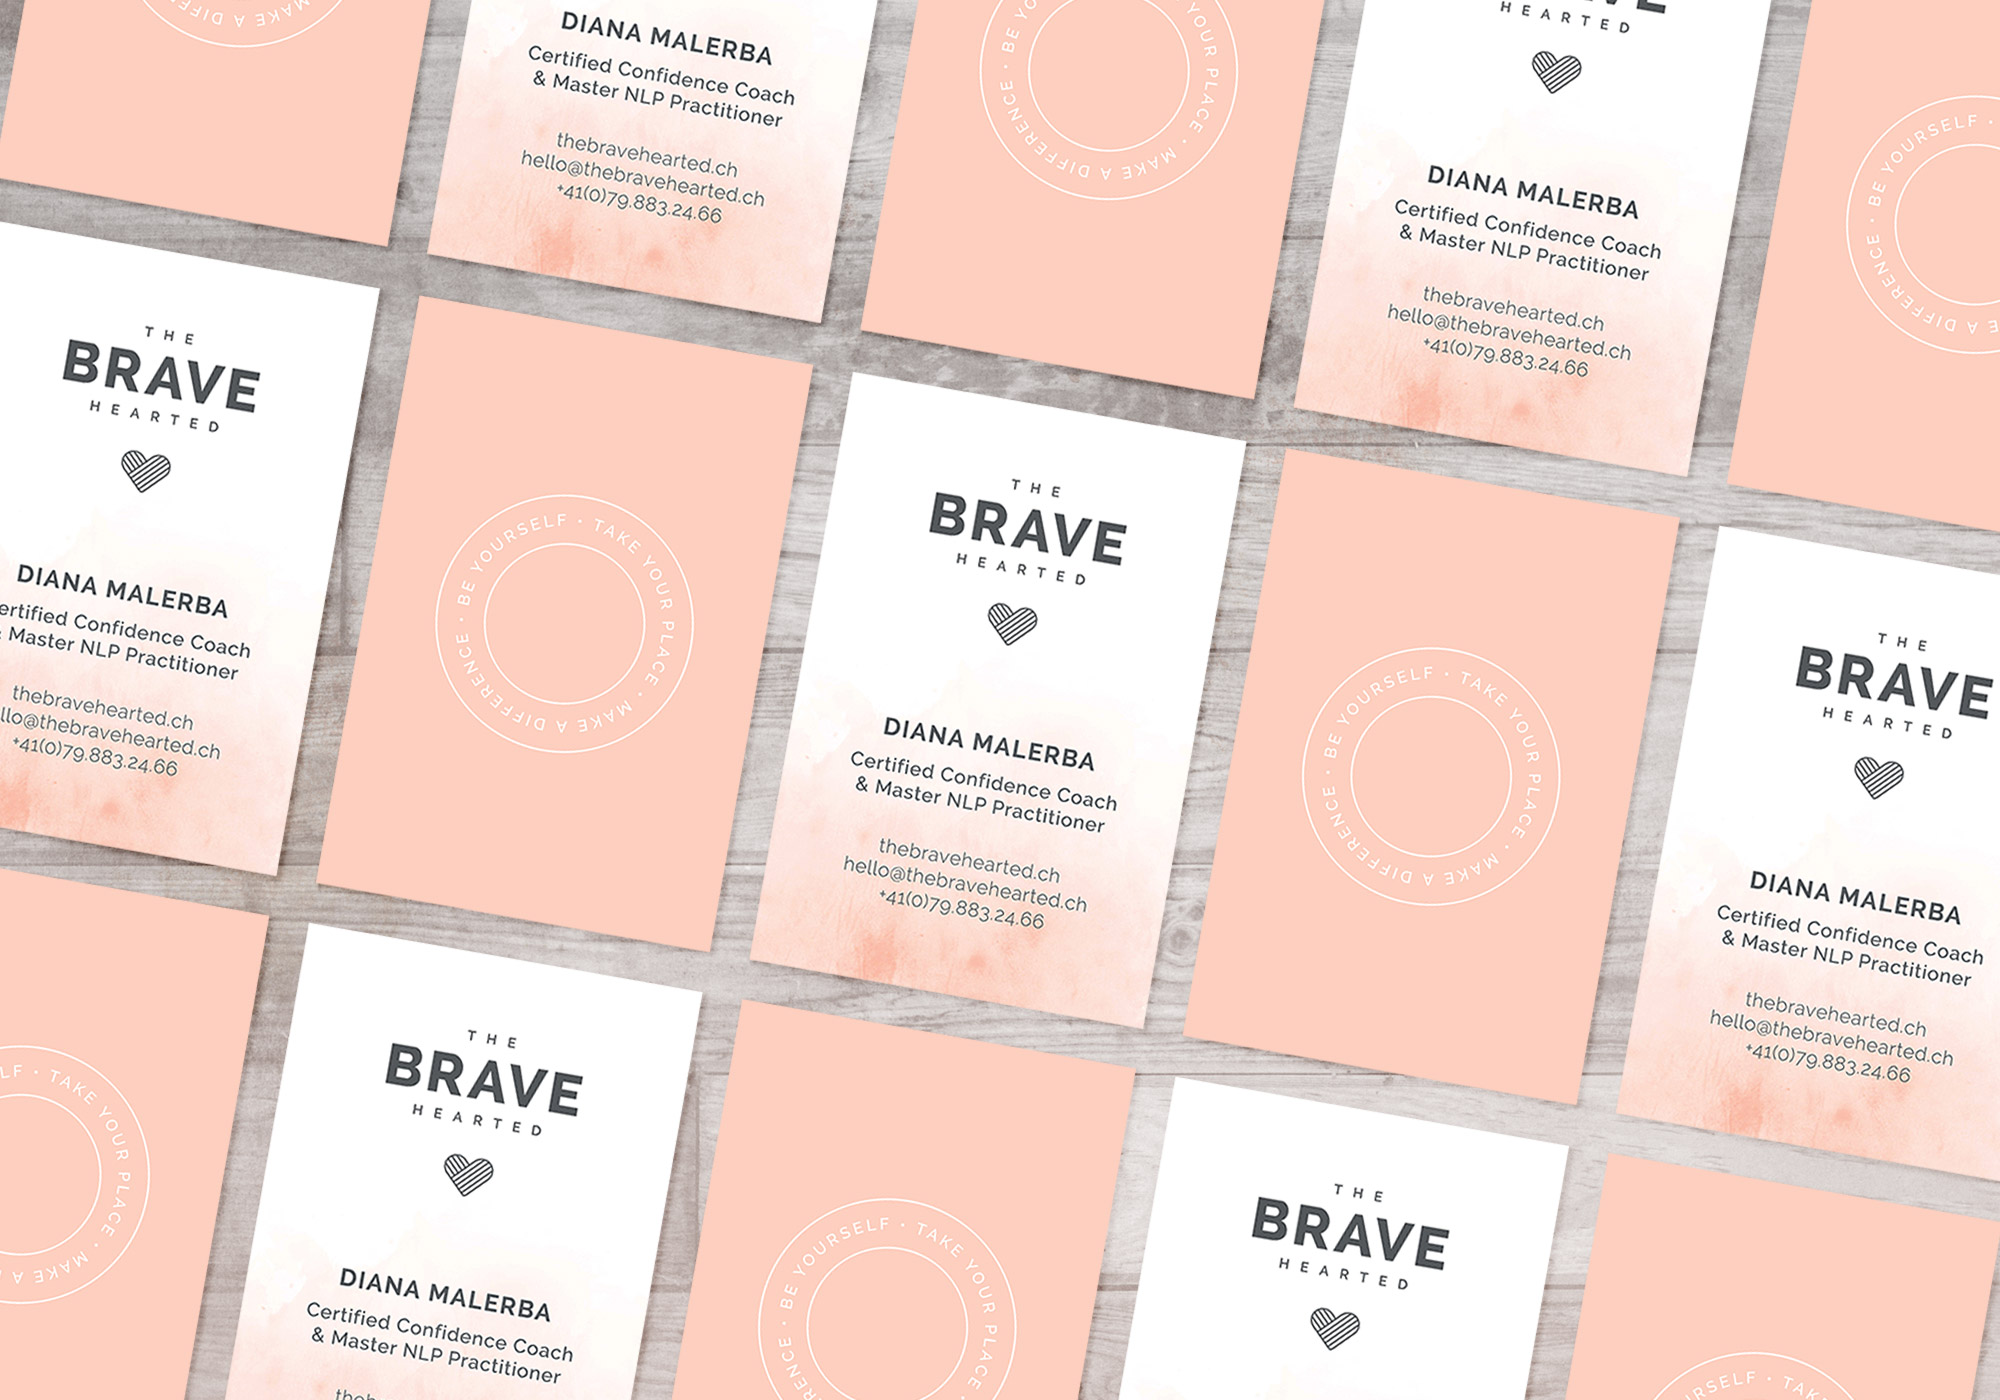 Business Cards - The Brave Hearted